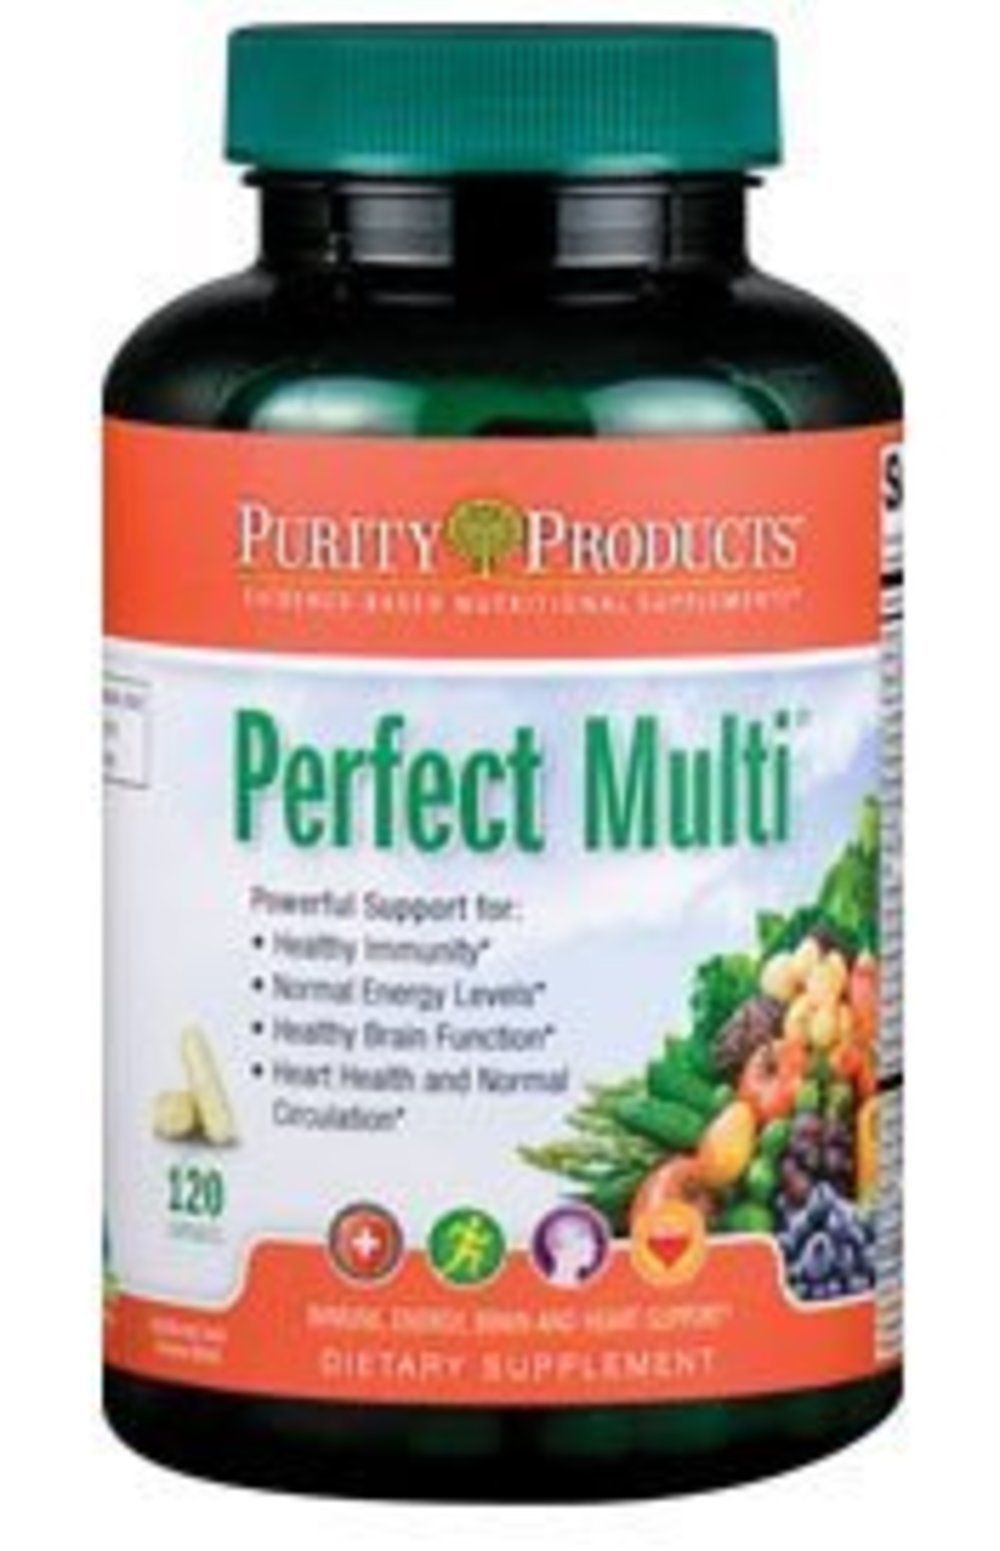 Perfect Multi-vitamin by Purity Products by Purity Products